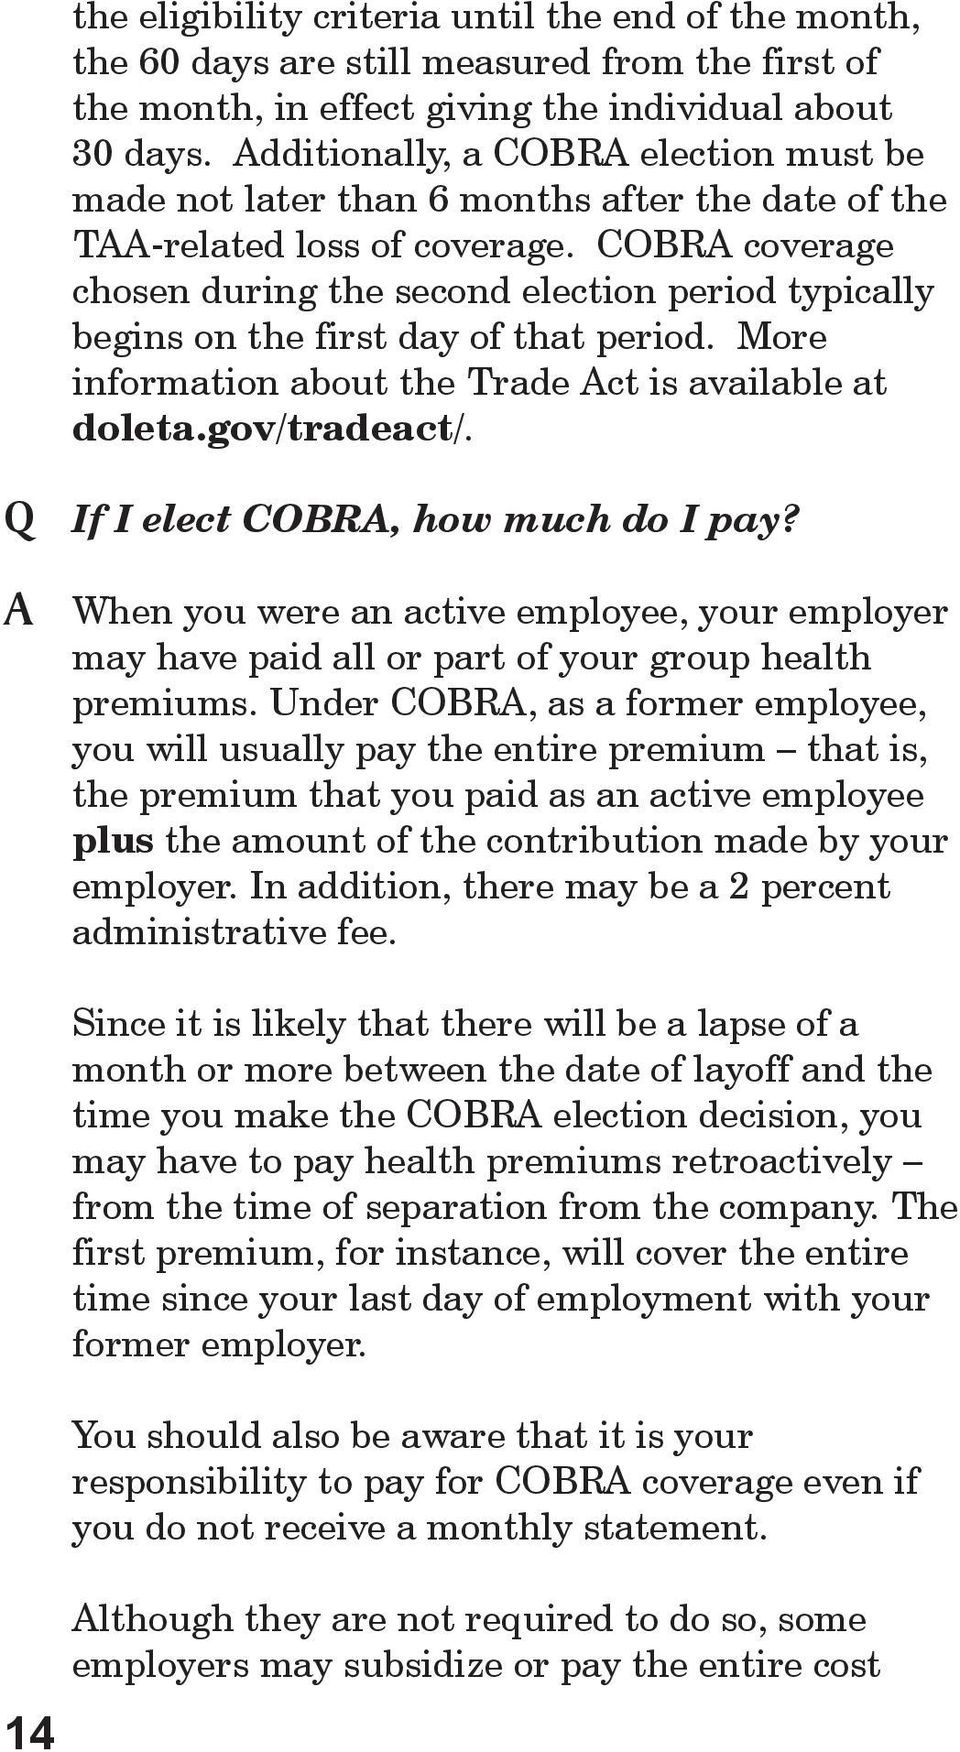 COBRA coverage chosen during the second election period typically begins on the first day of that period. More information about the Trade Act is available at doleta.gov/tradeact/.